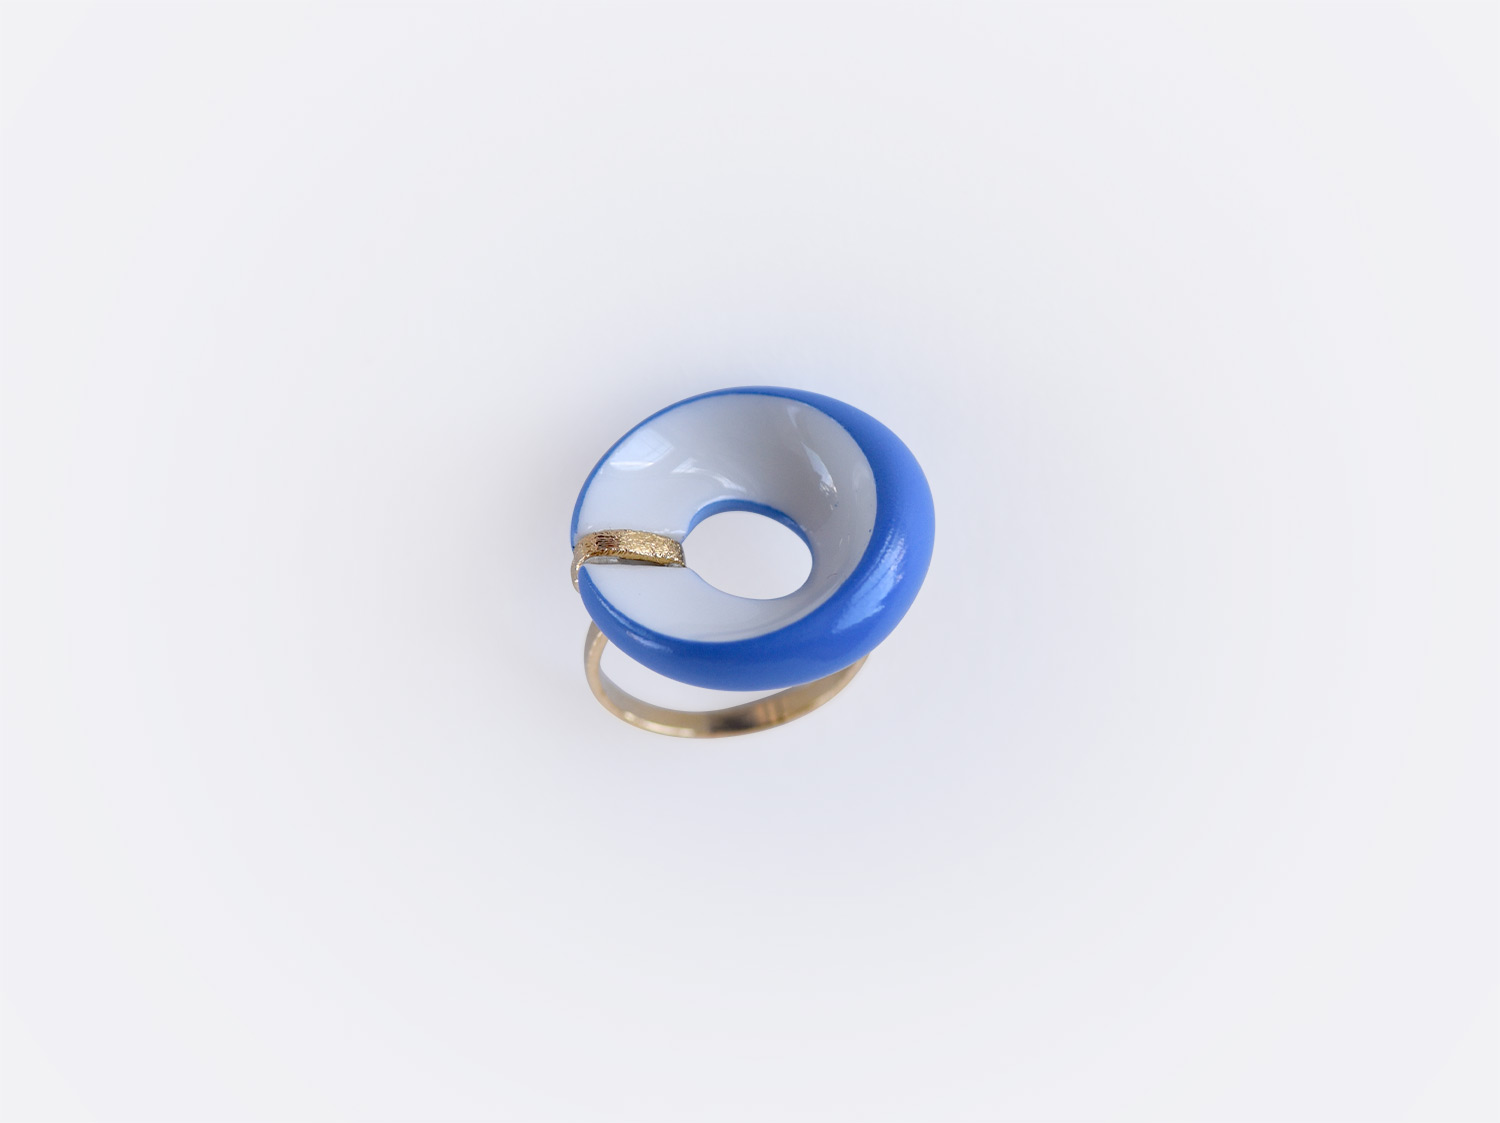 China Alba bleu flat ring of the collection ALBA BLEU | Bernardaud